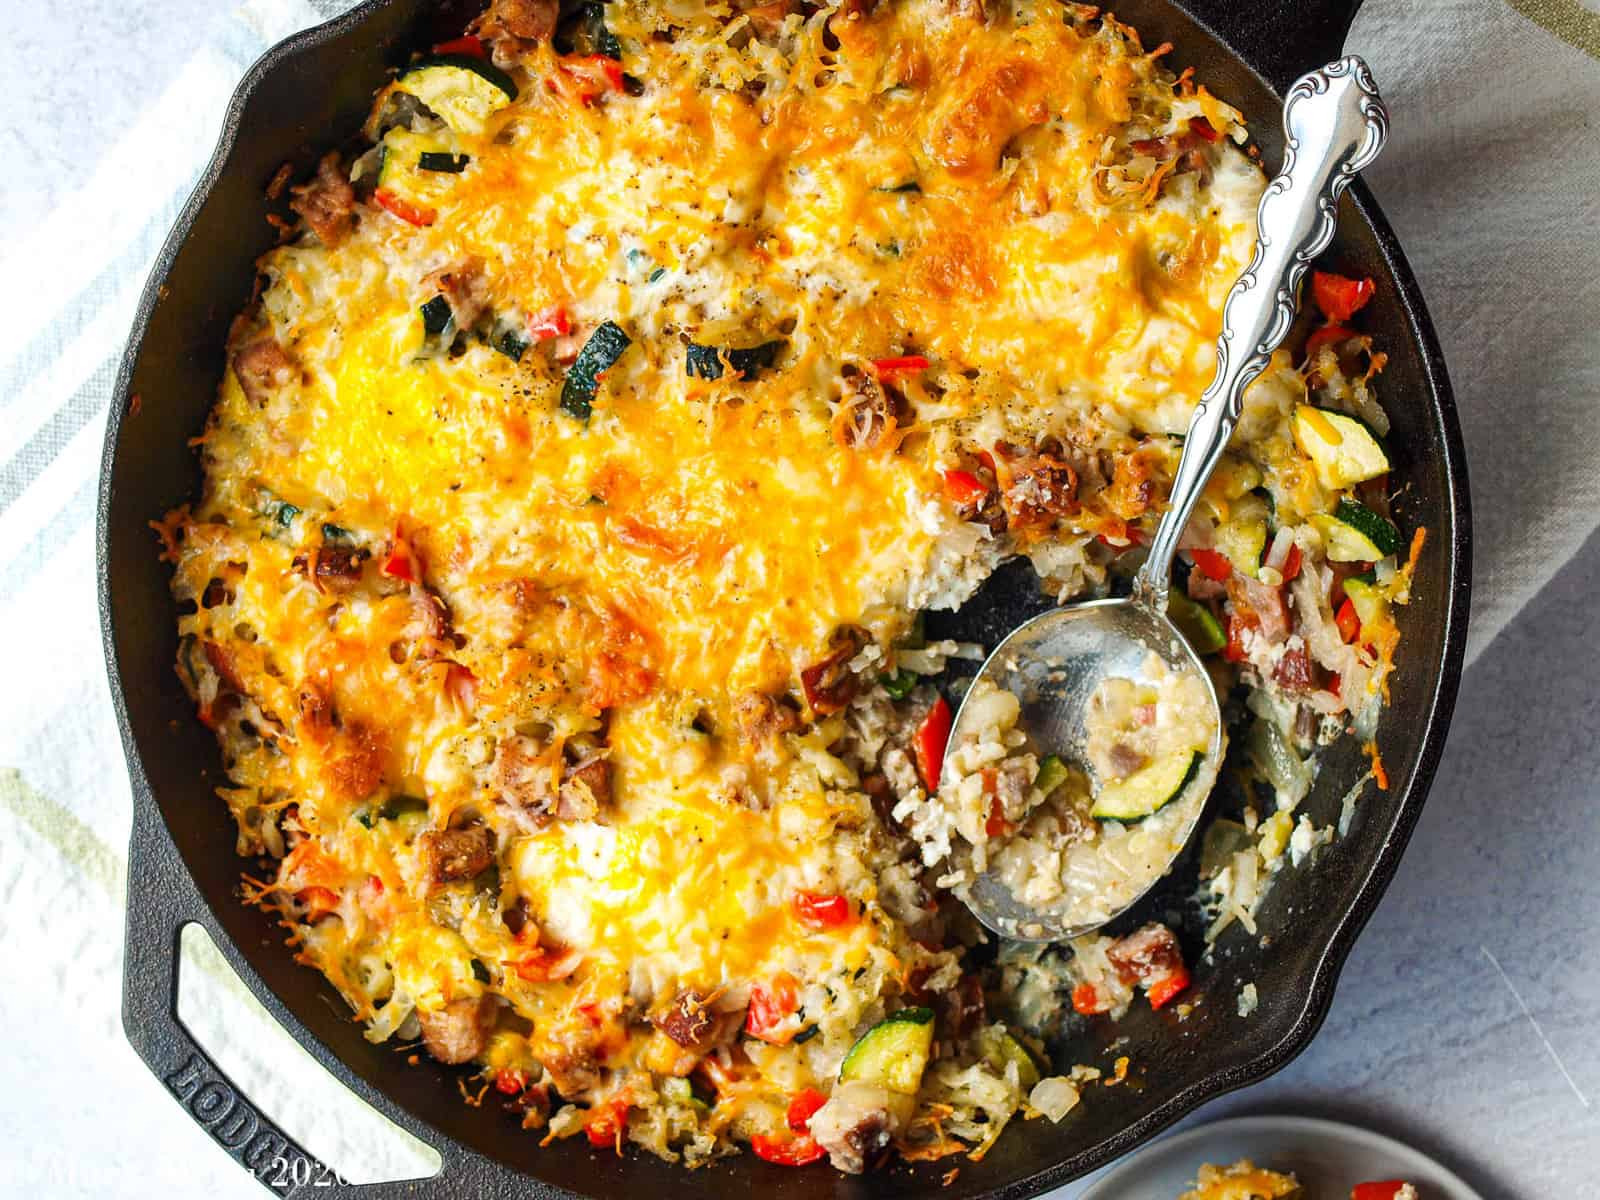 An overhead shot of a mountain breakfast skillet with a large spoonful taken out of it.